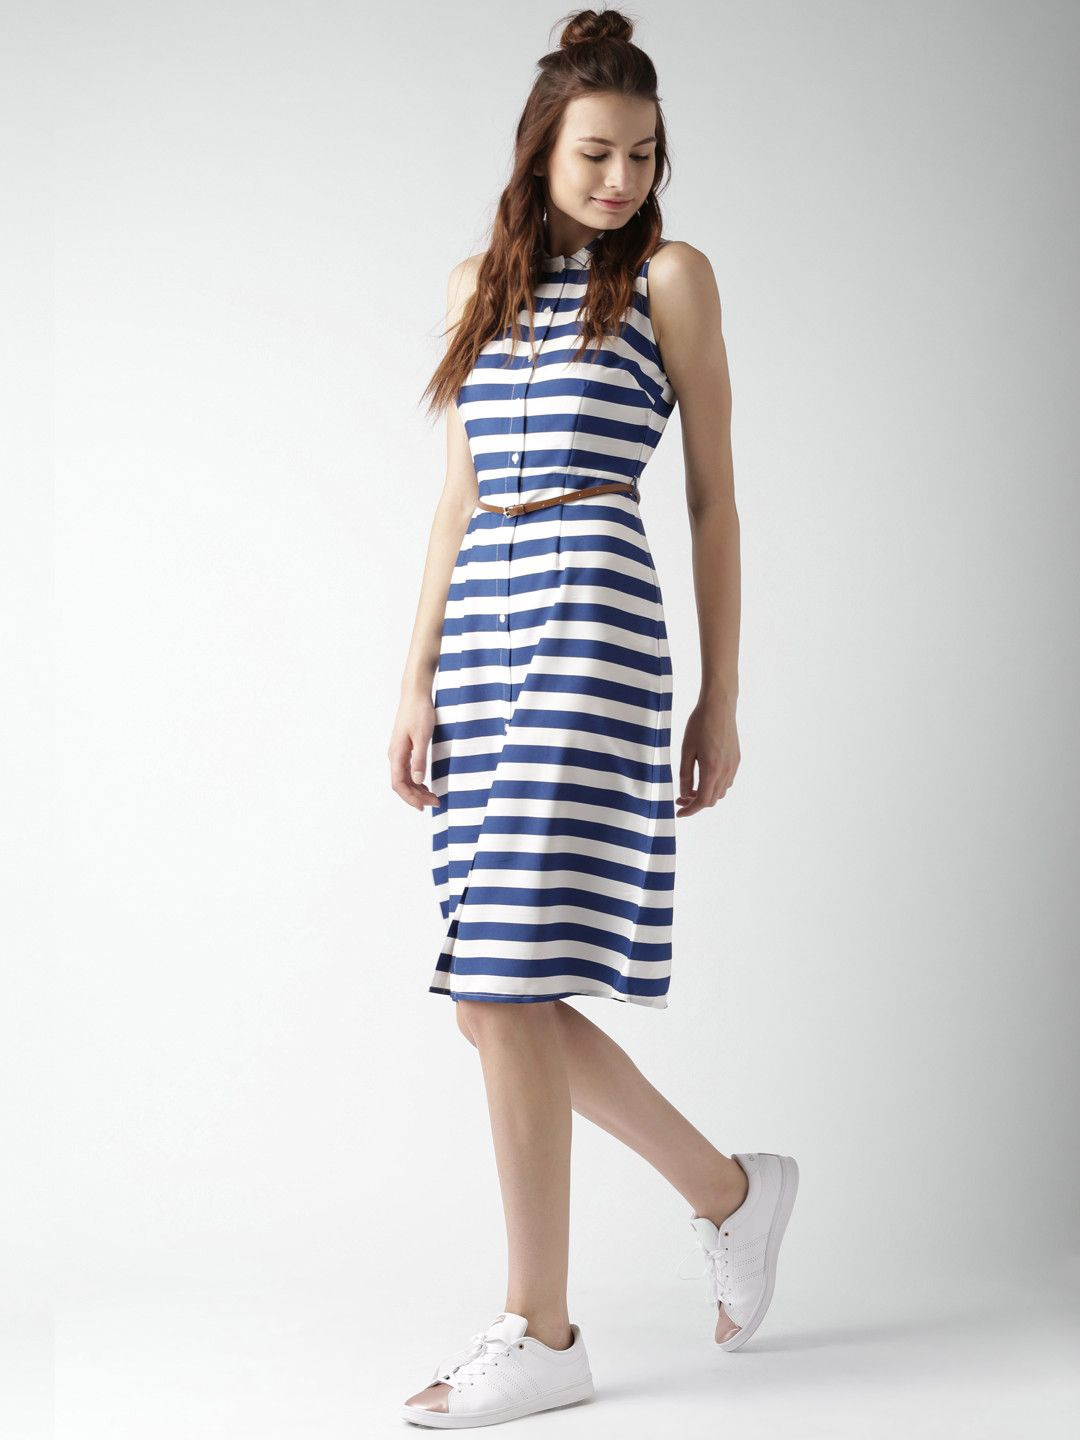 Mast Harbour Navy Blue White Striped Shirt Dress Western Tendencies Tshirt Parental Hitam Xxl